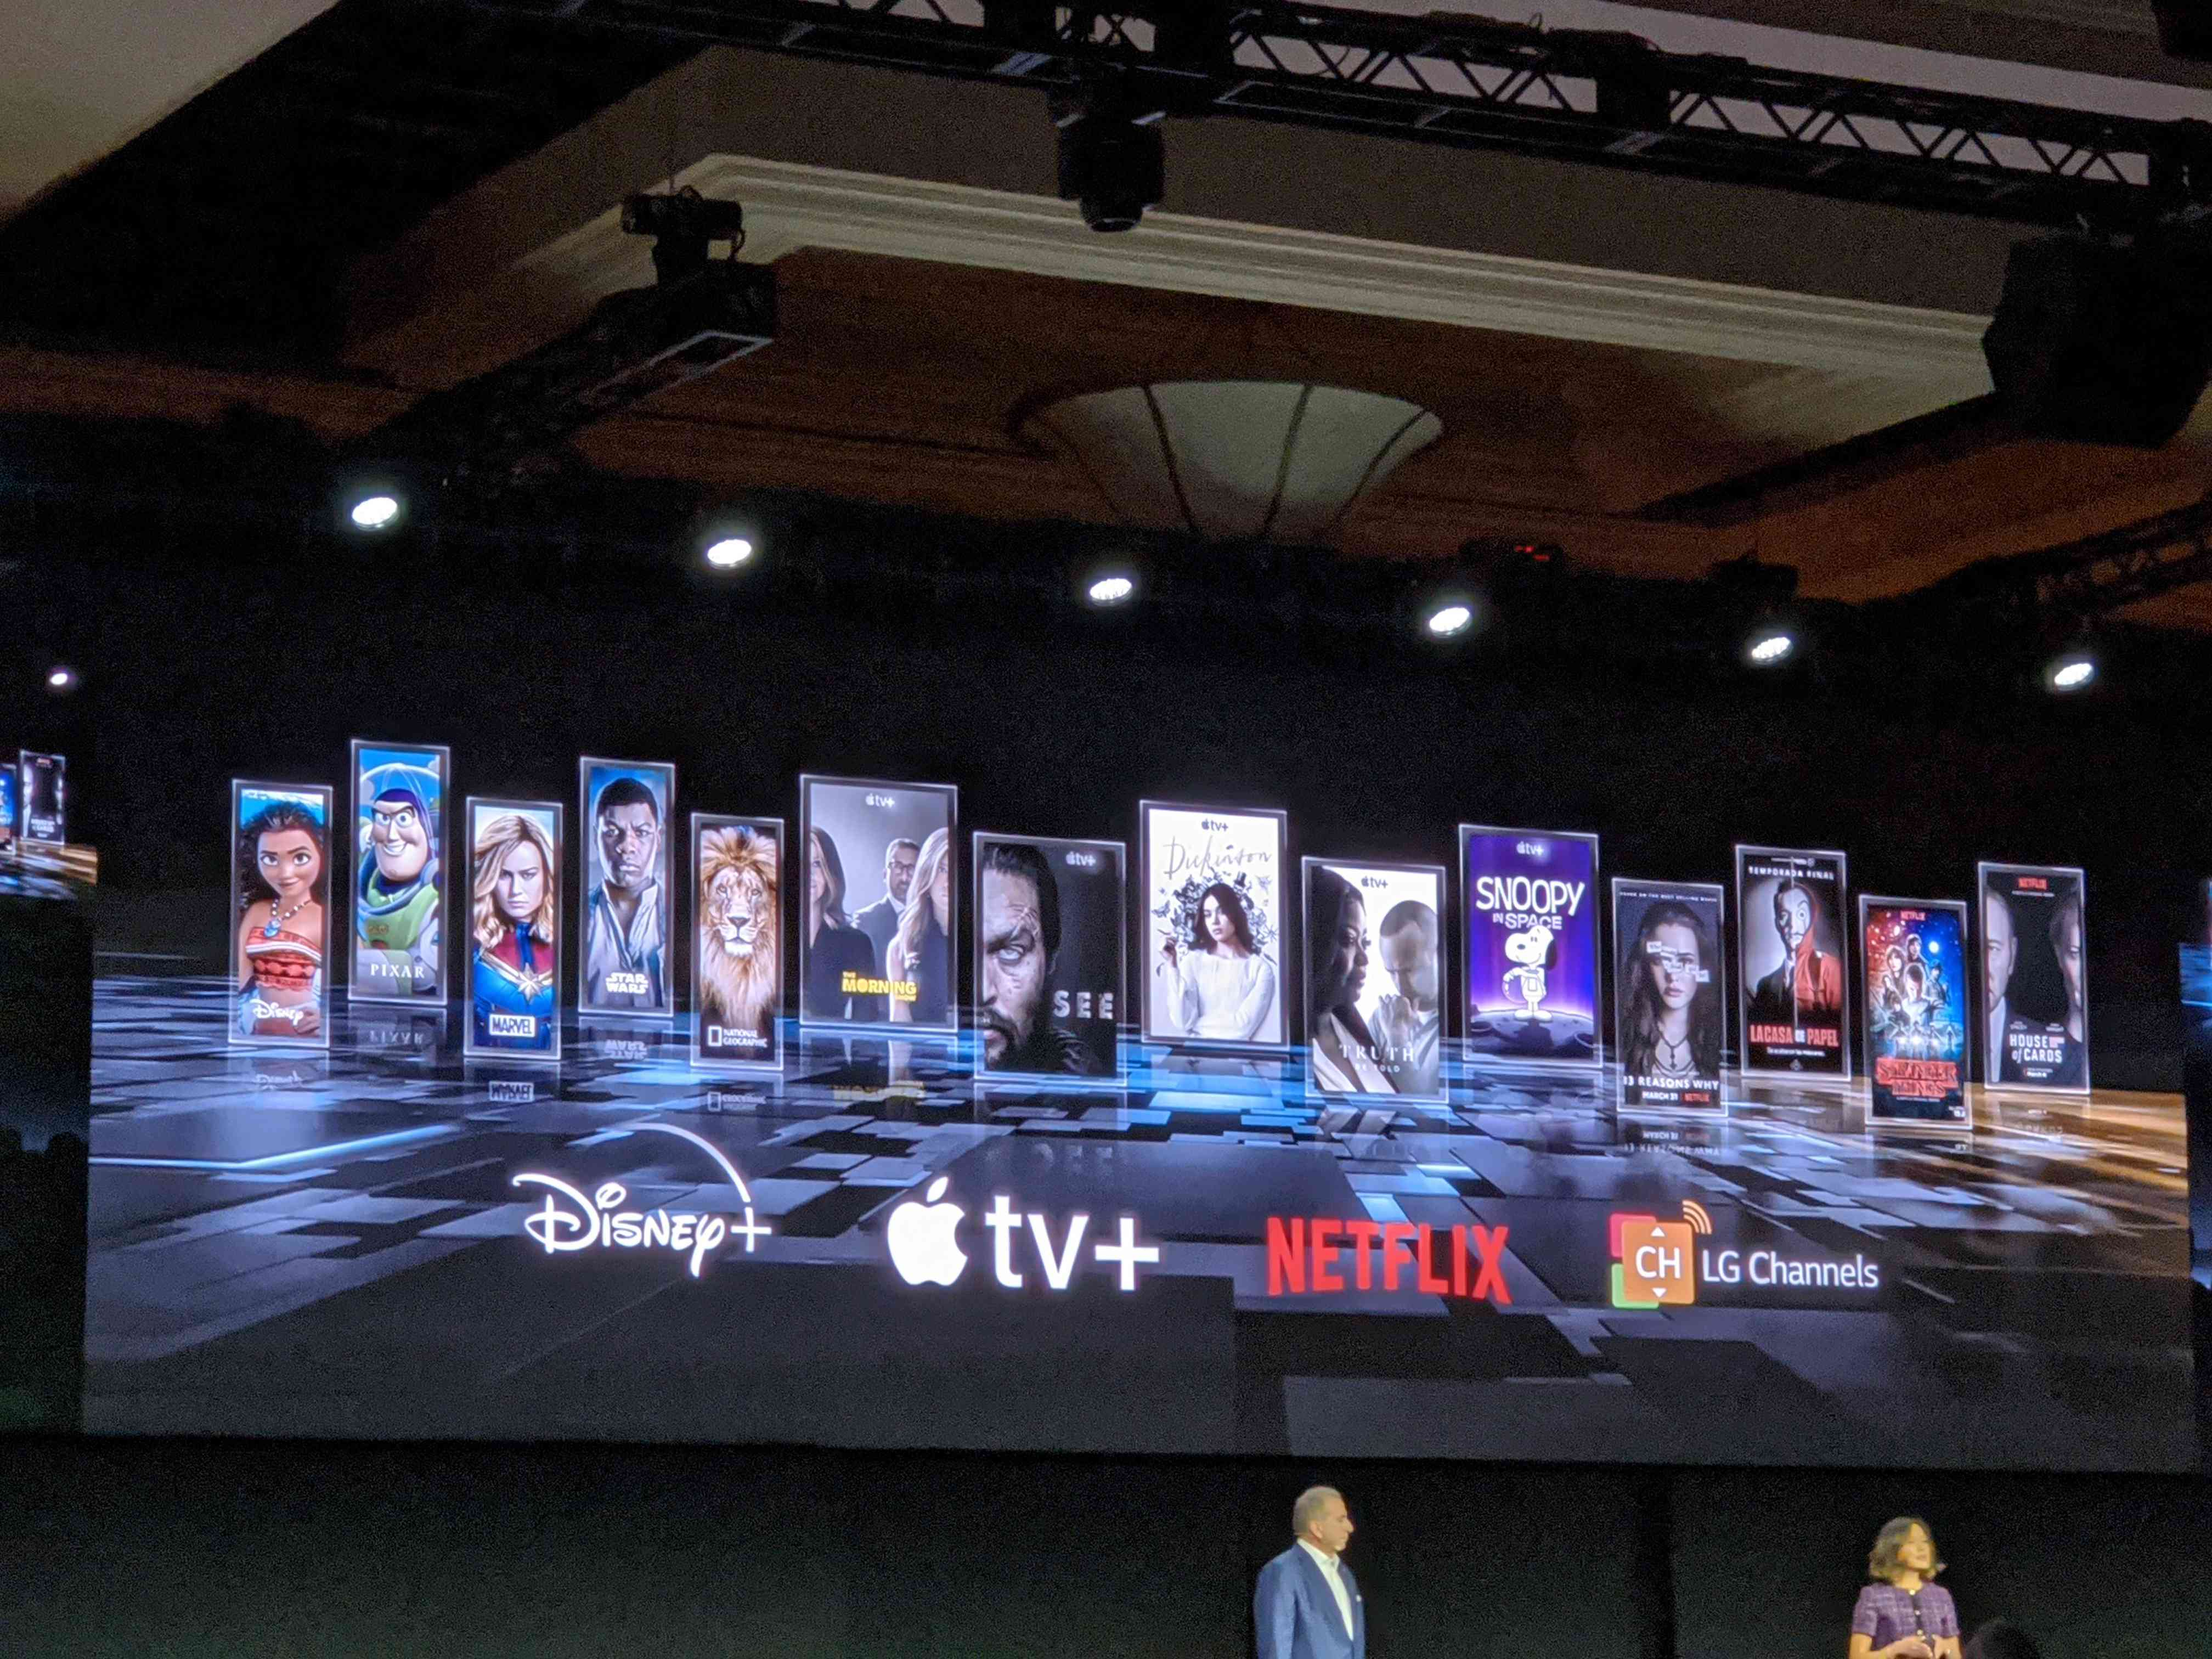 The LG stage at CES showing off new Apple TV+